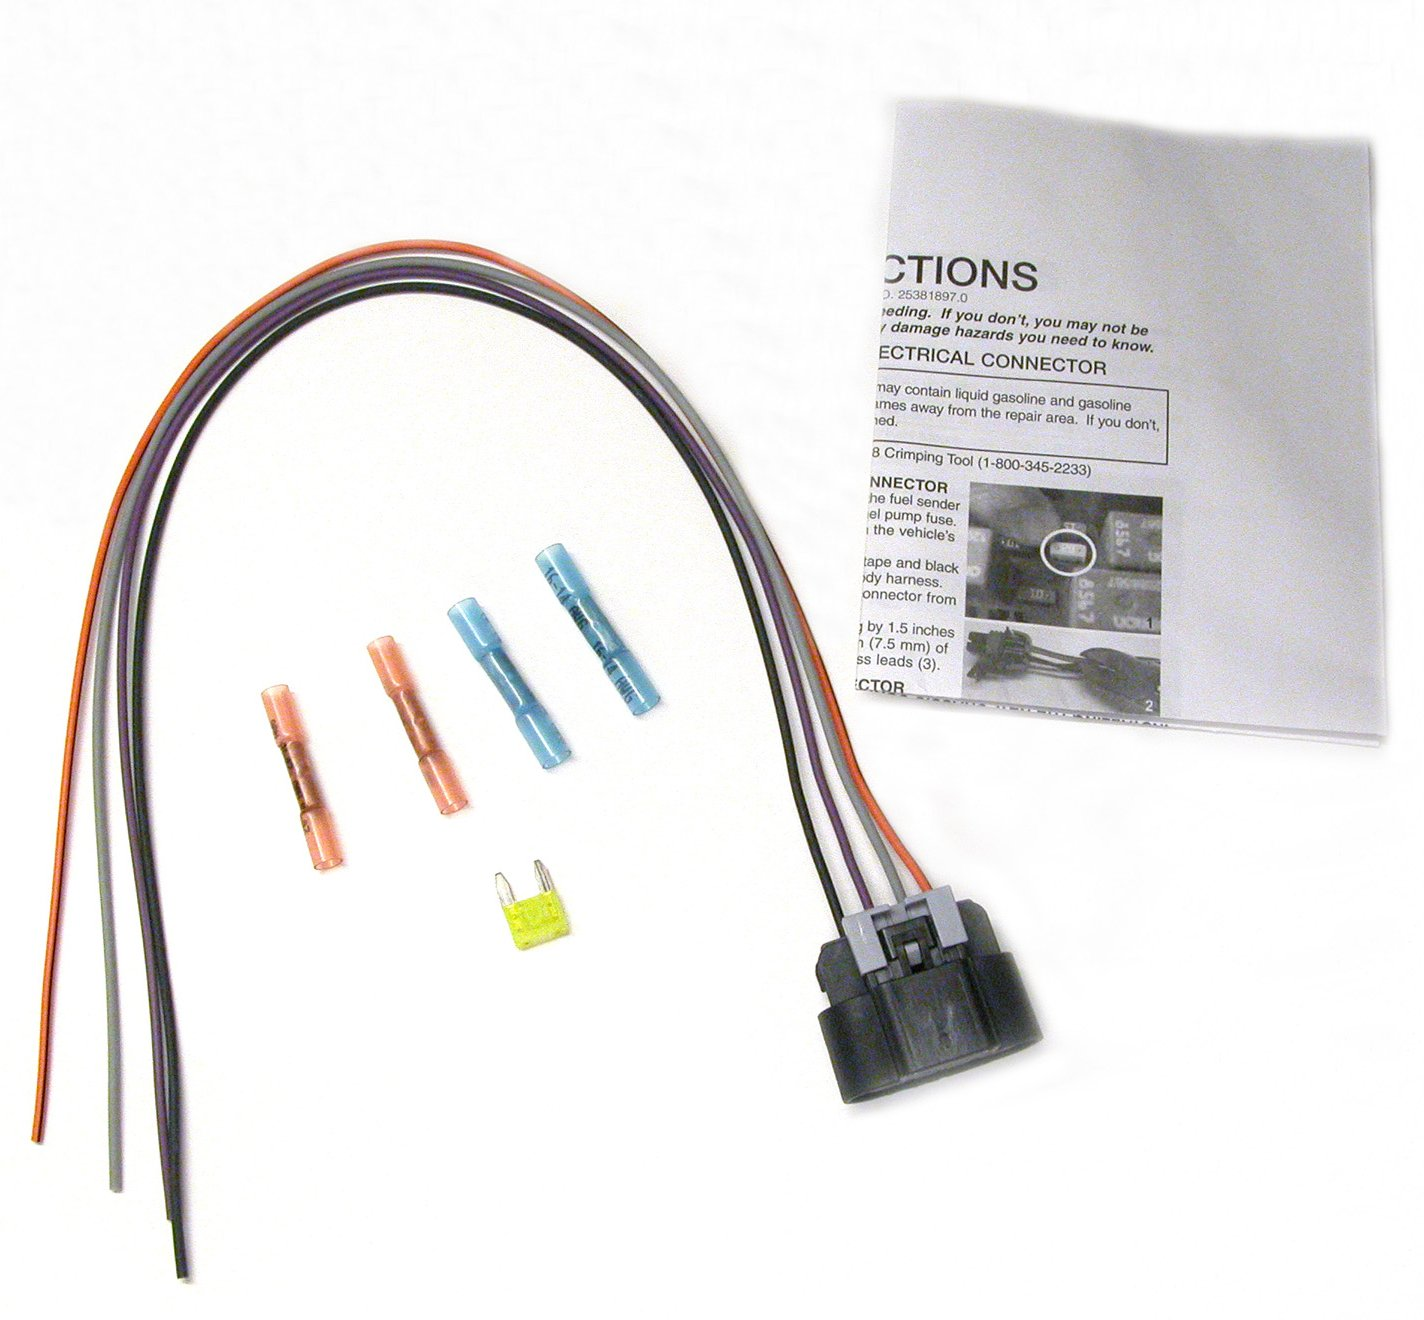 Amazoncom Delphi FA10003 Fuel Pump Wiring Harness Automotive - Fuel Pump Wiring Connectors